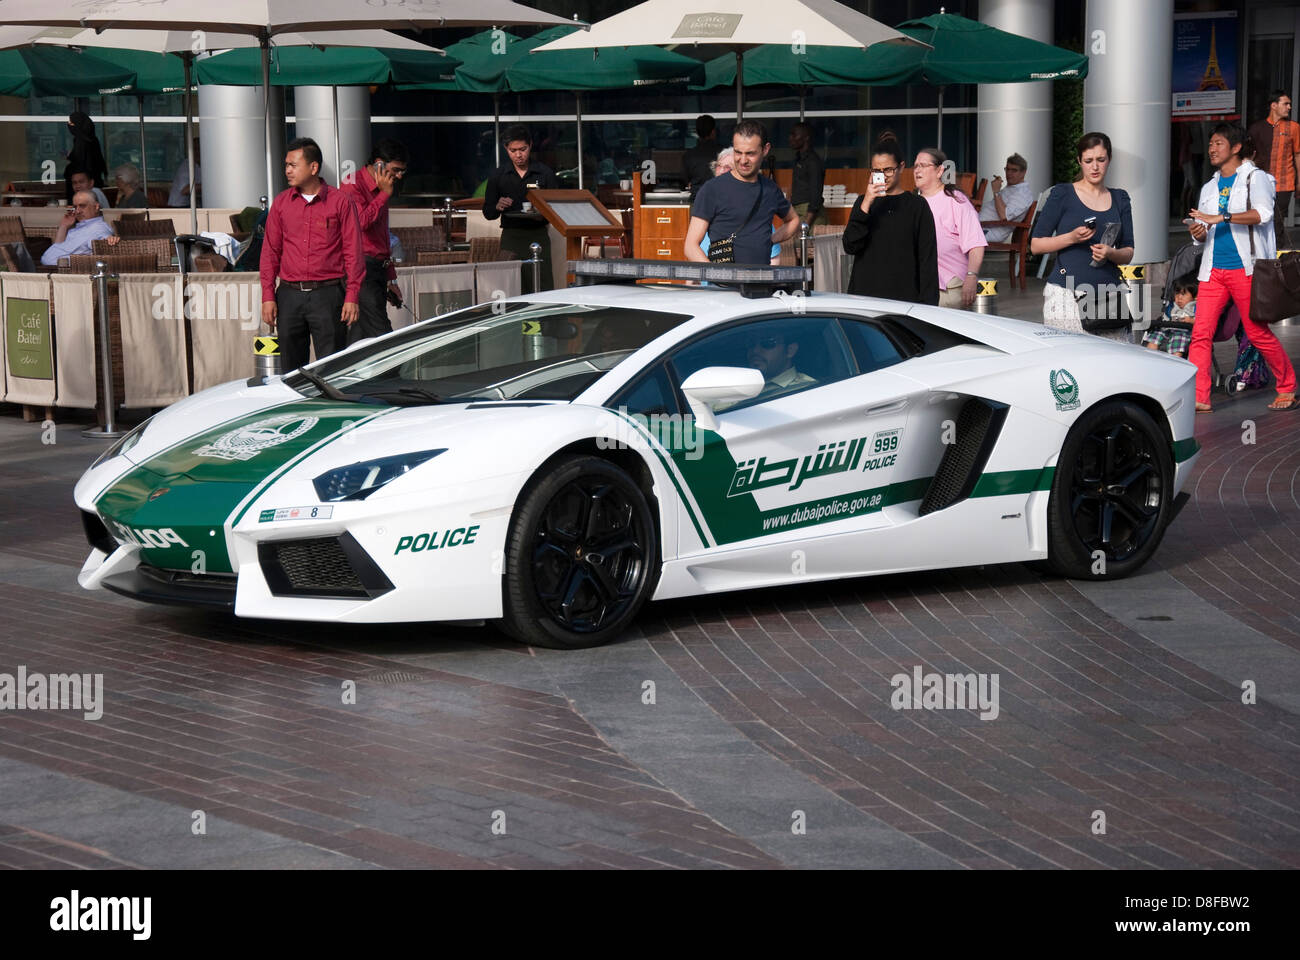 lamborghini veneno where to buy html with Stock Photo Dubai Police Lamborghini Aventador Lp700 4 Coupe Patrol Car 56886958 on Stock Photo Dubai Police Lamborghini Aventador Lp700 4 Coupe Patrol Car 56886958 as well Lamborghini Veneno likewise Badass Subaru Outback together with Honda Motorcycle Blue Book Prices together with They Built What 5 Expensive Replicas That Will Shock You.